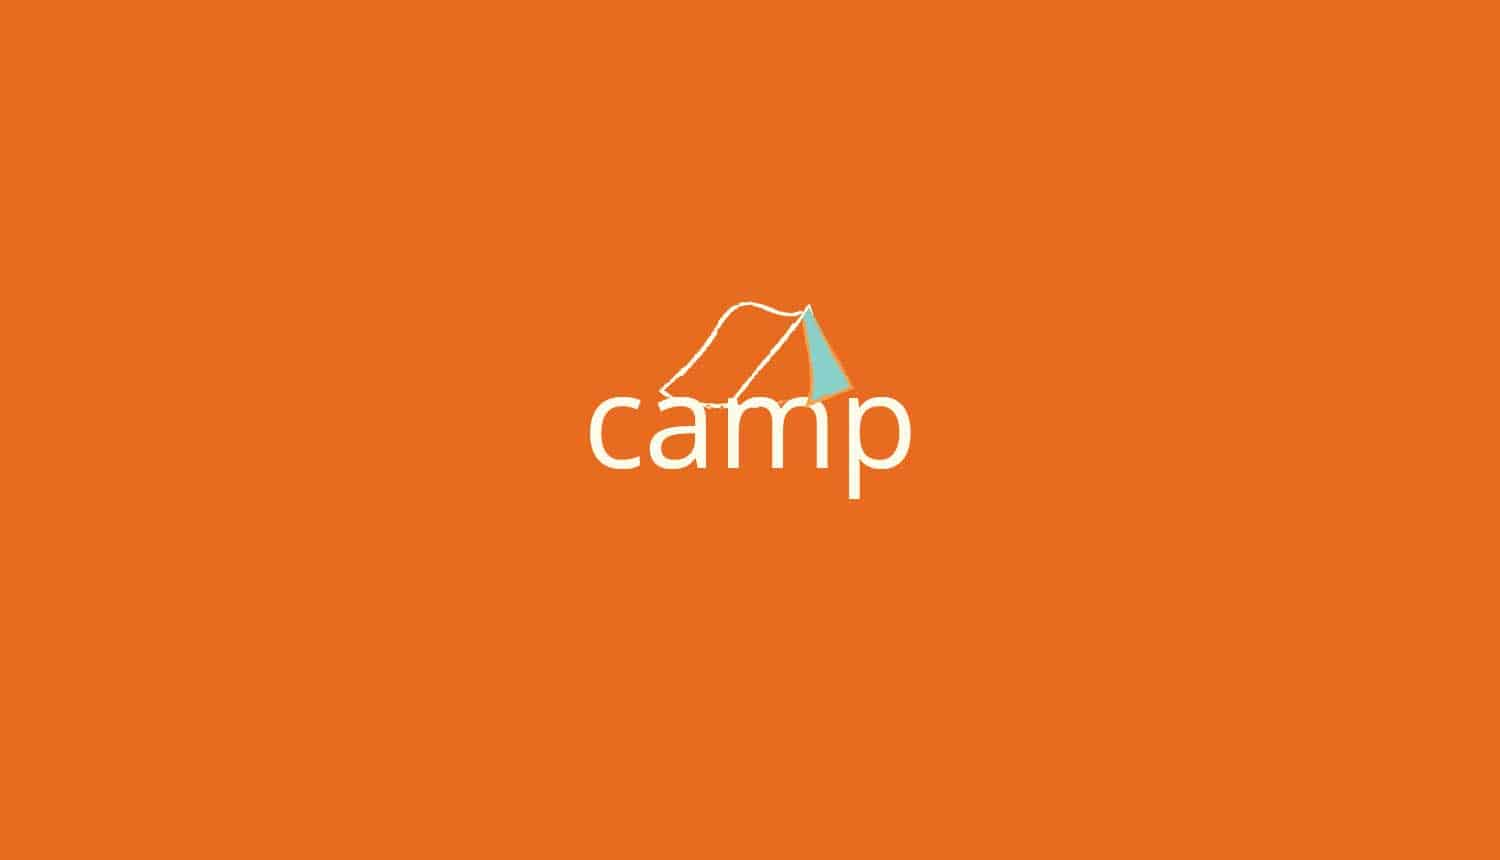 Announcing the 2017 TMA Annual Quality of Life Family Camp - The